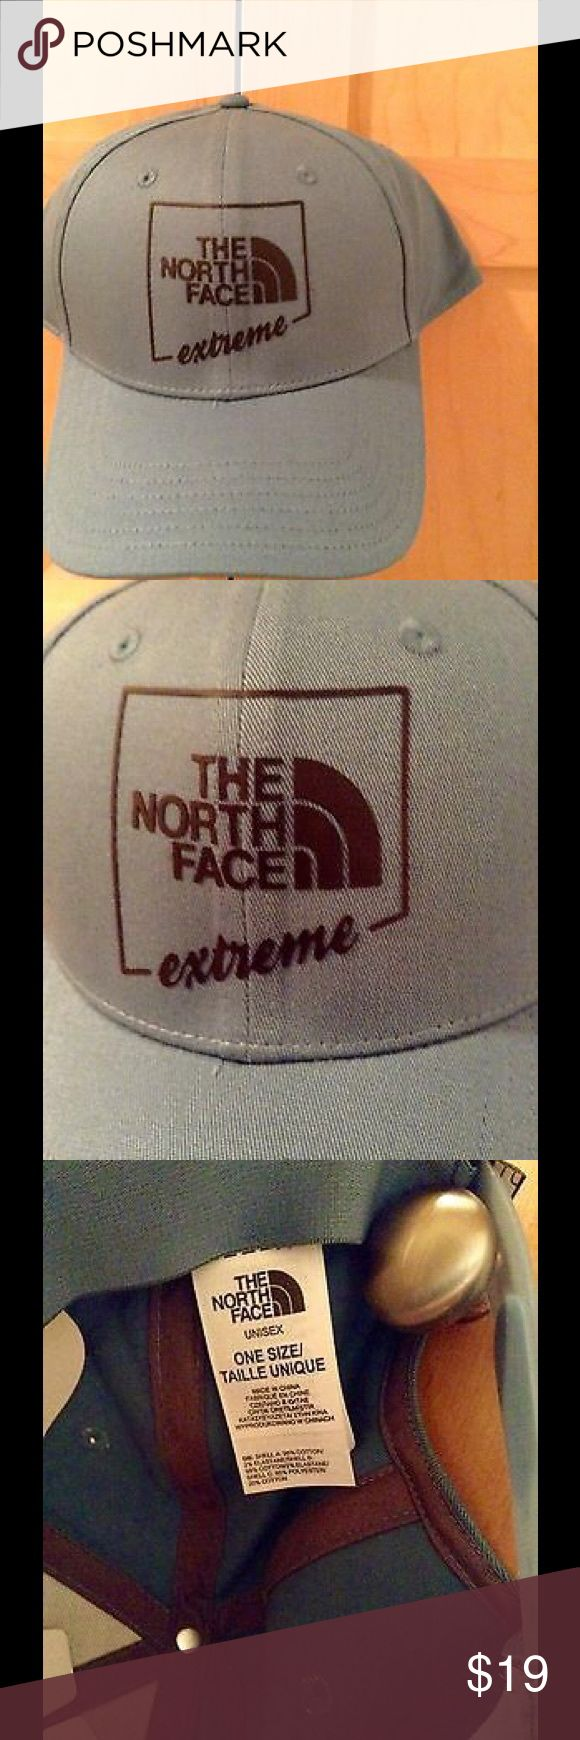 NEW The North Face Sports Cap Brand new with tag, classic sport cap in storm blue color. No trade.  Price is firm. North Face Accessories Hats